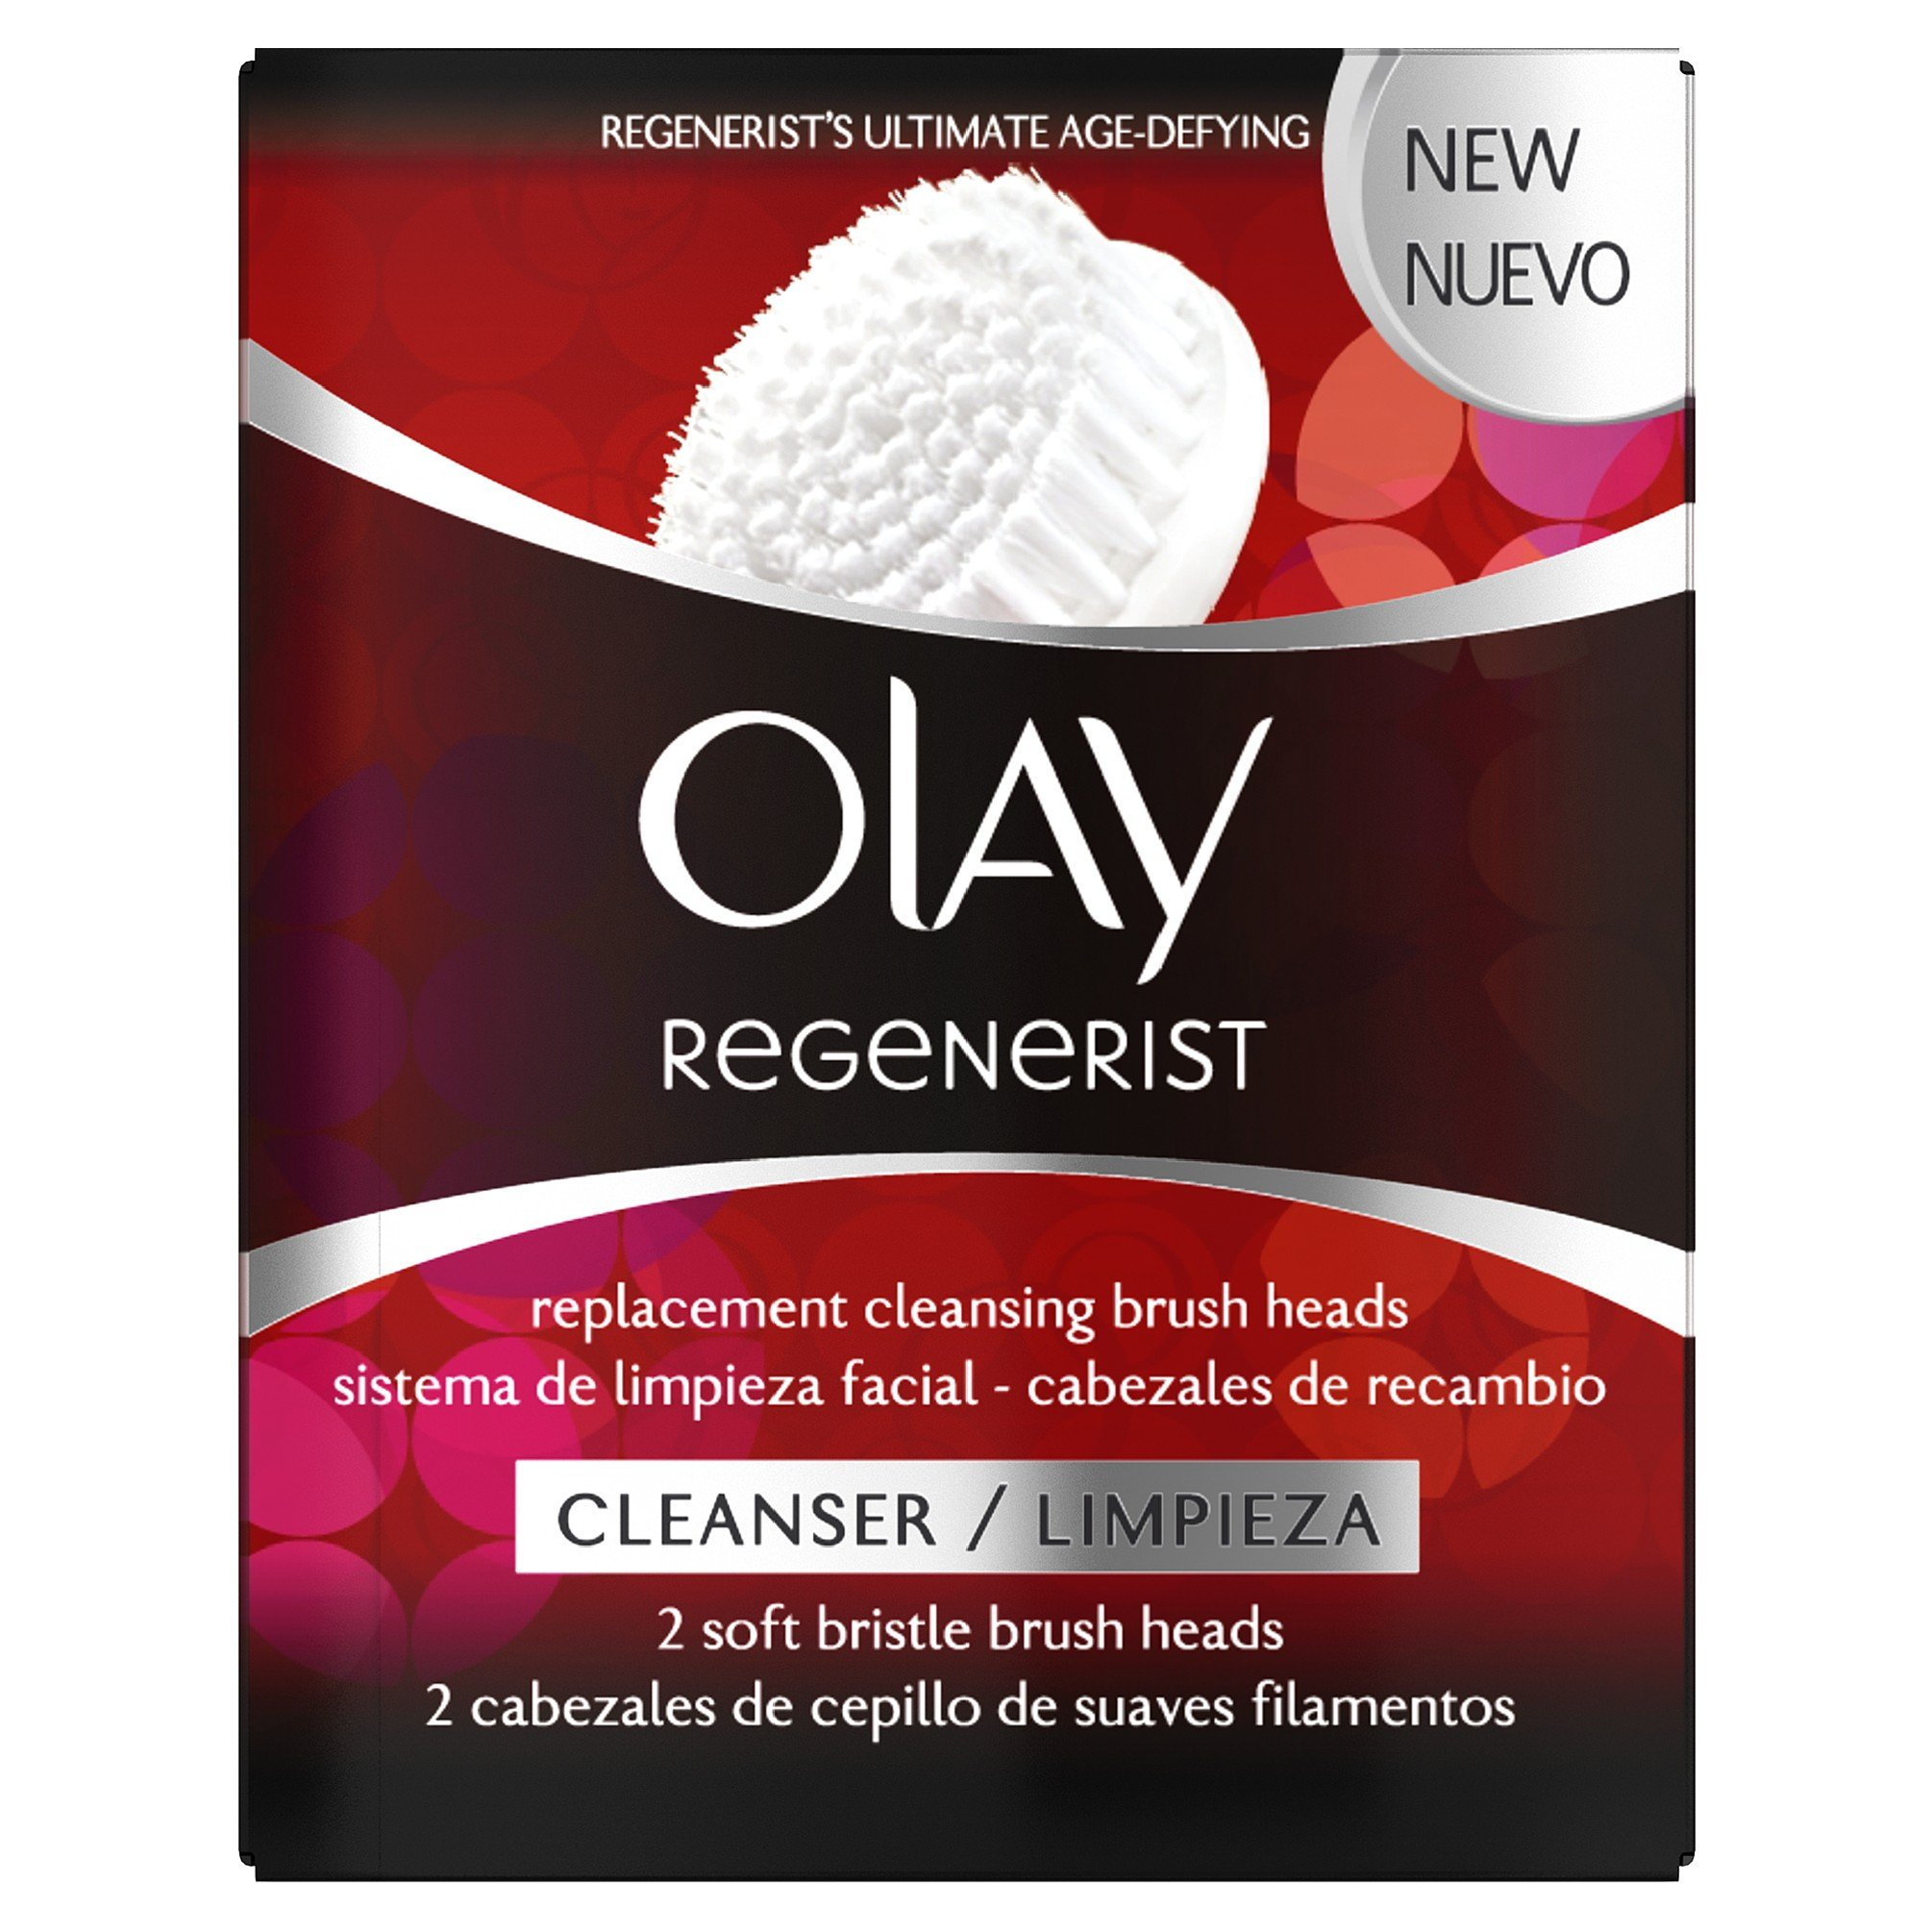 Amazon.com: Olay Regenerist Replacement Cleansing Brush Heads, 150 g: Beauty